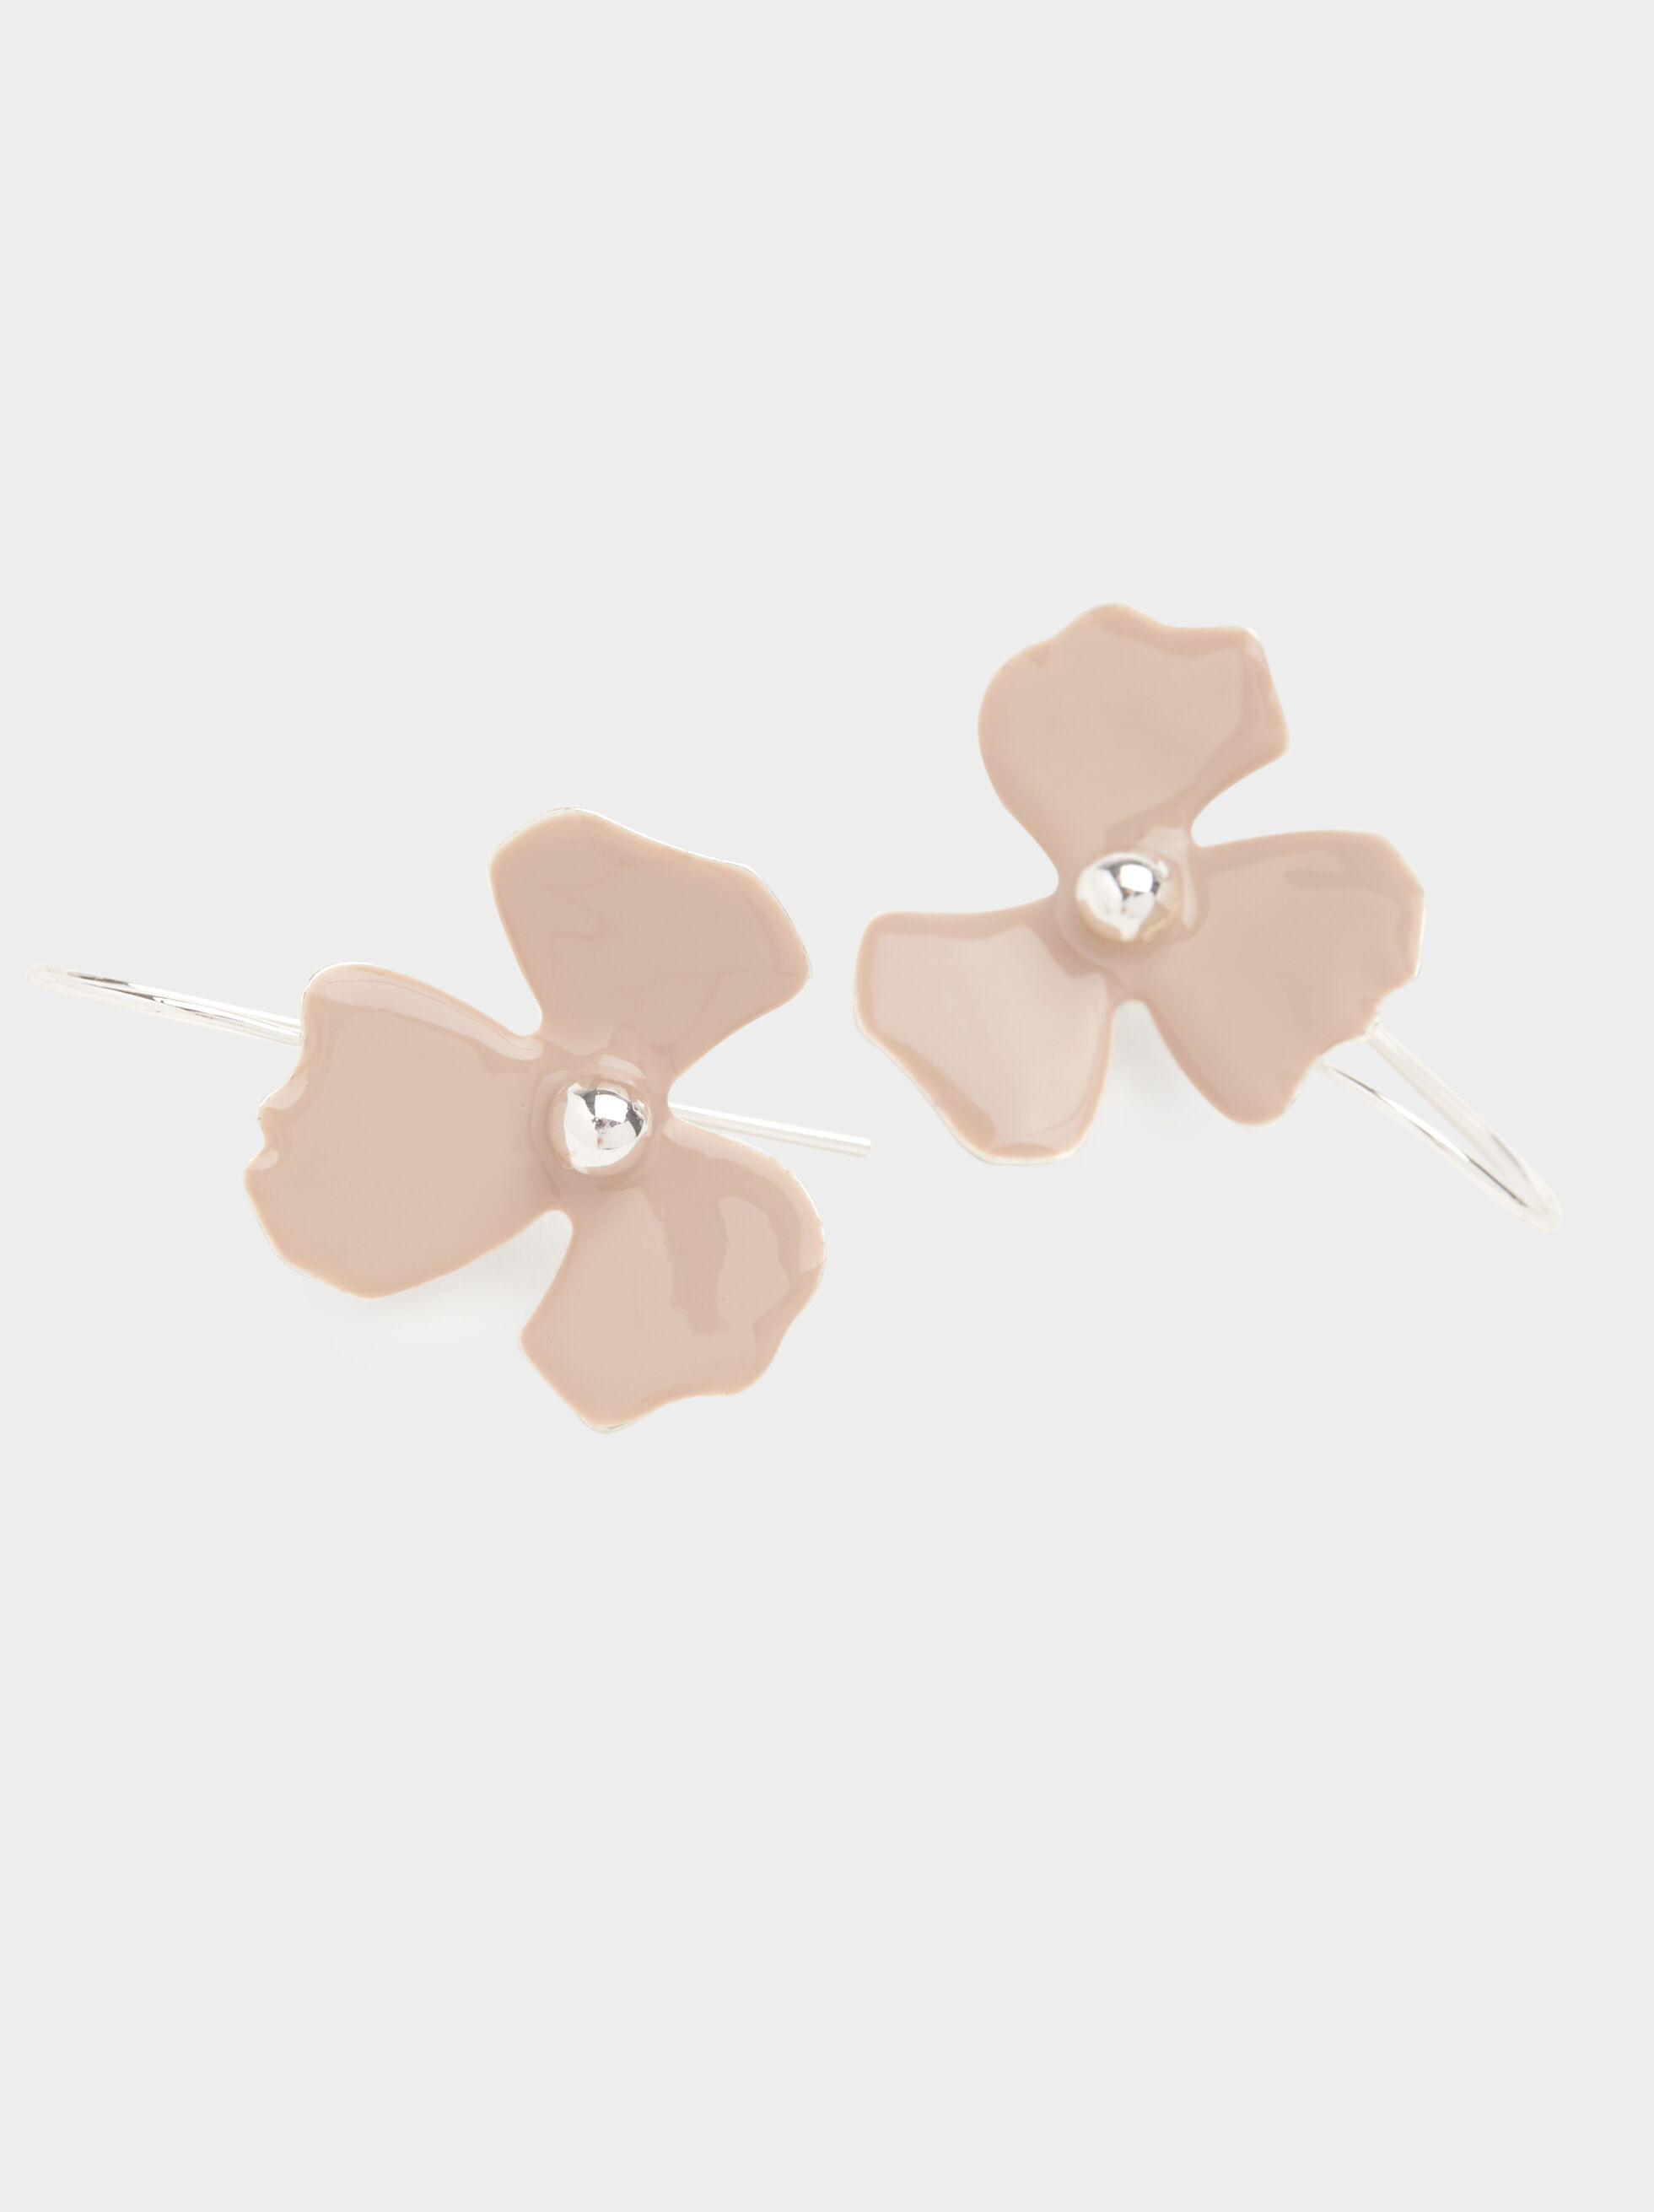 Magnolia Medium Flower-Shaped Earrings, Multicolor, hi-res